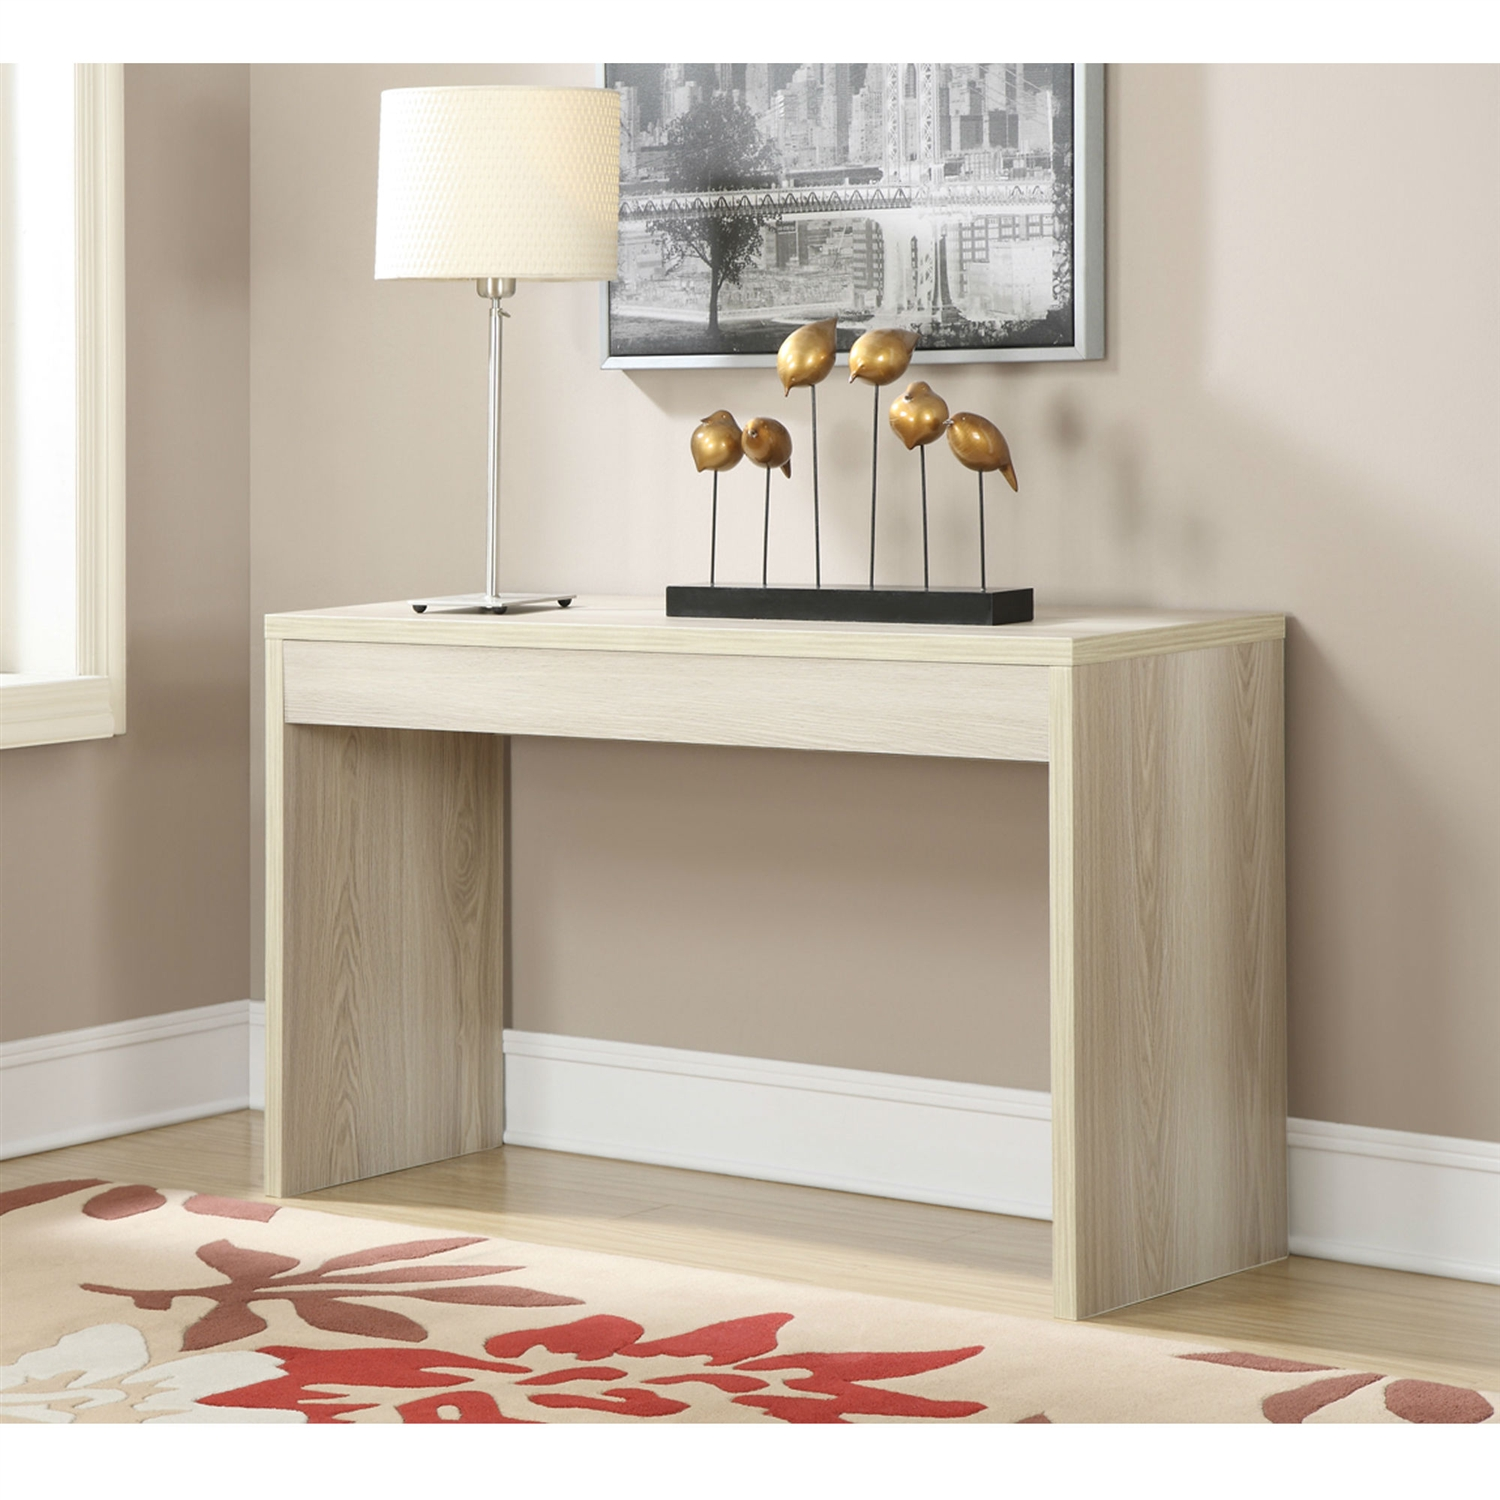 Fullsize Of Wood Console Table